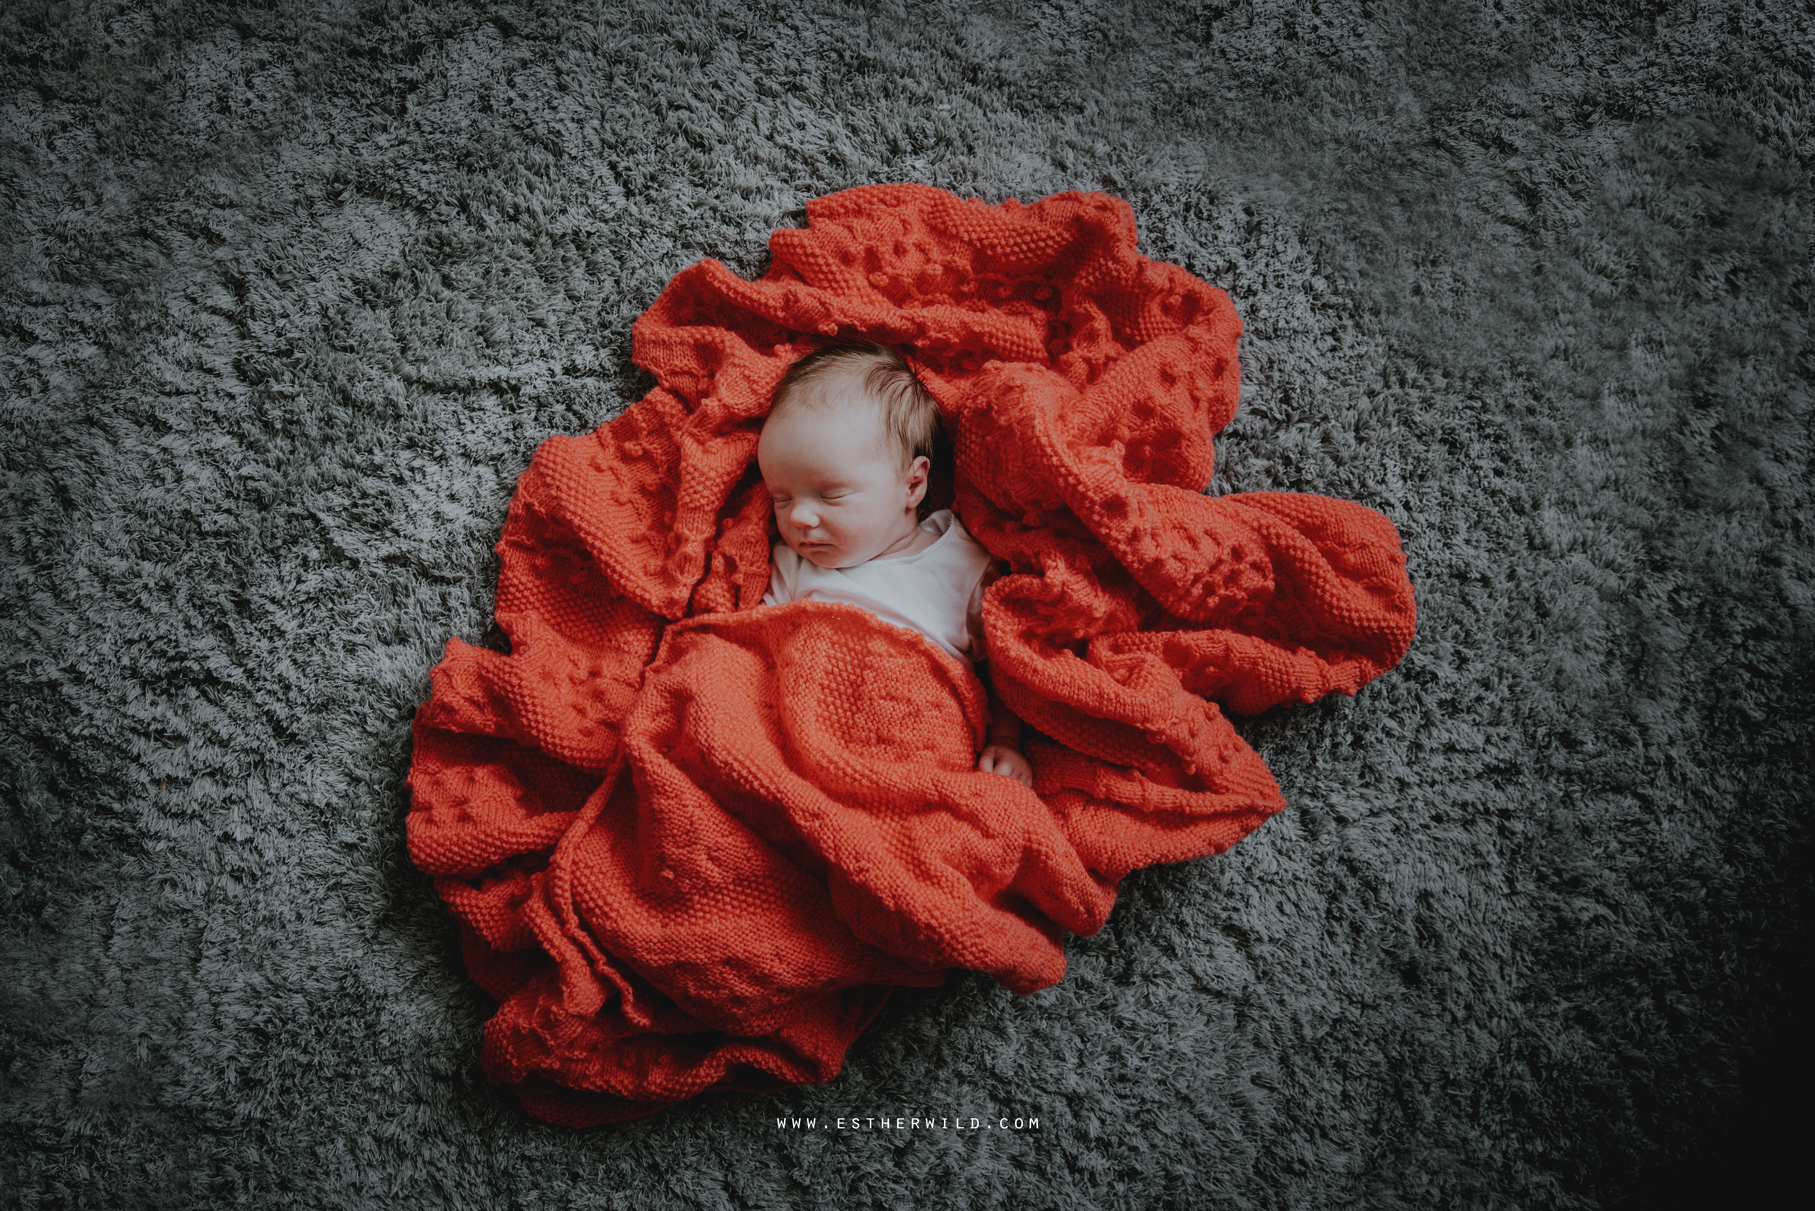 Newborn_Family_Photographer_London_Home_Lifestyle_Norfolk_3R8A4071.jpg